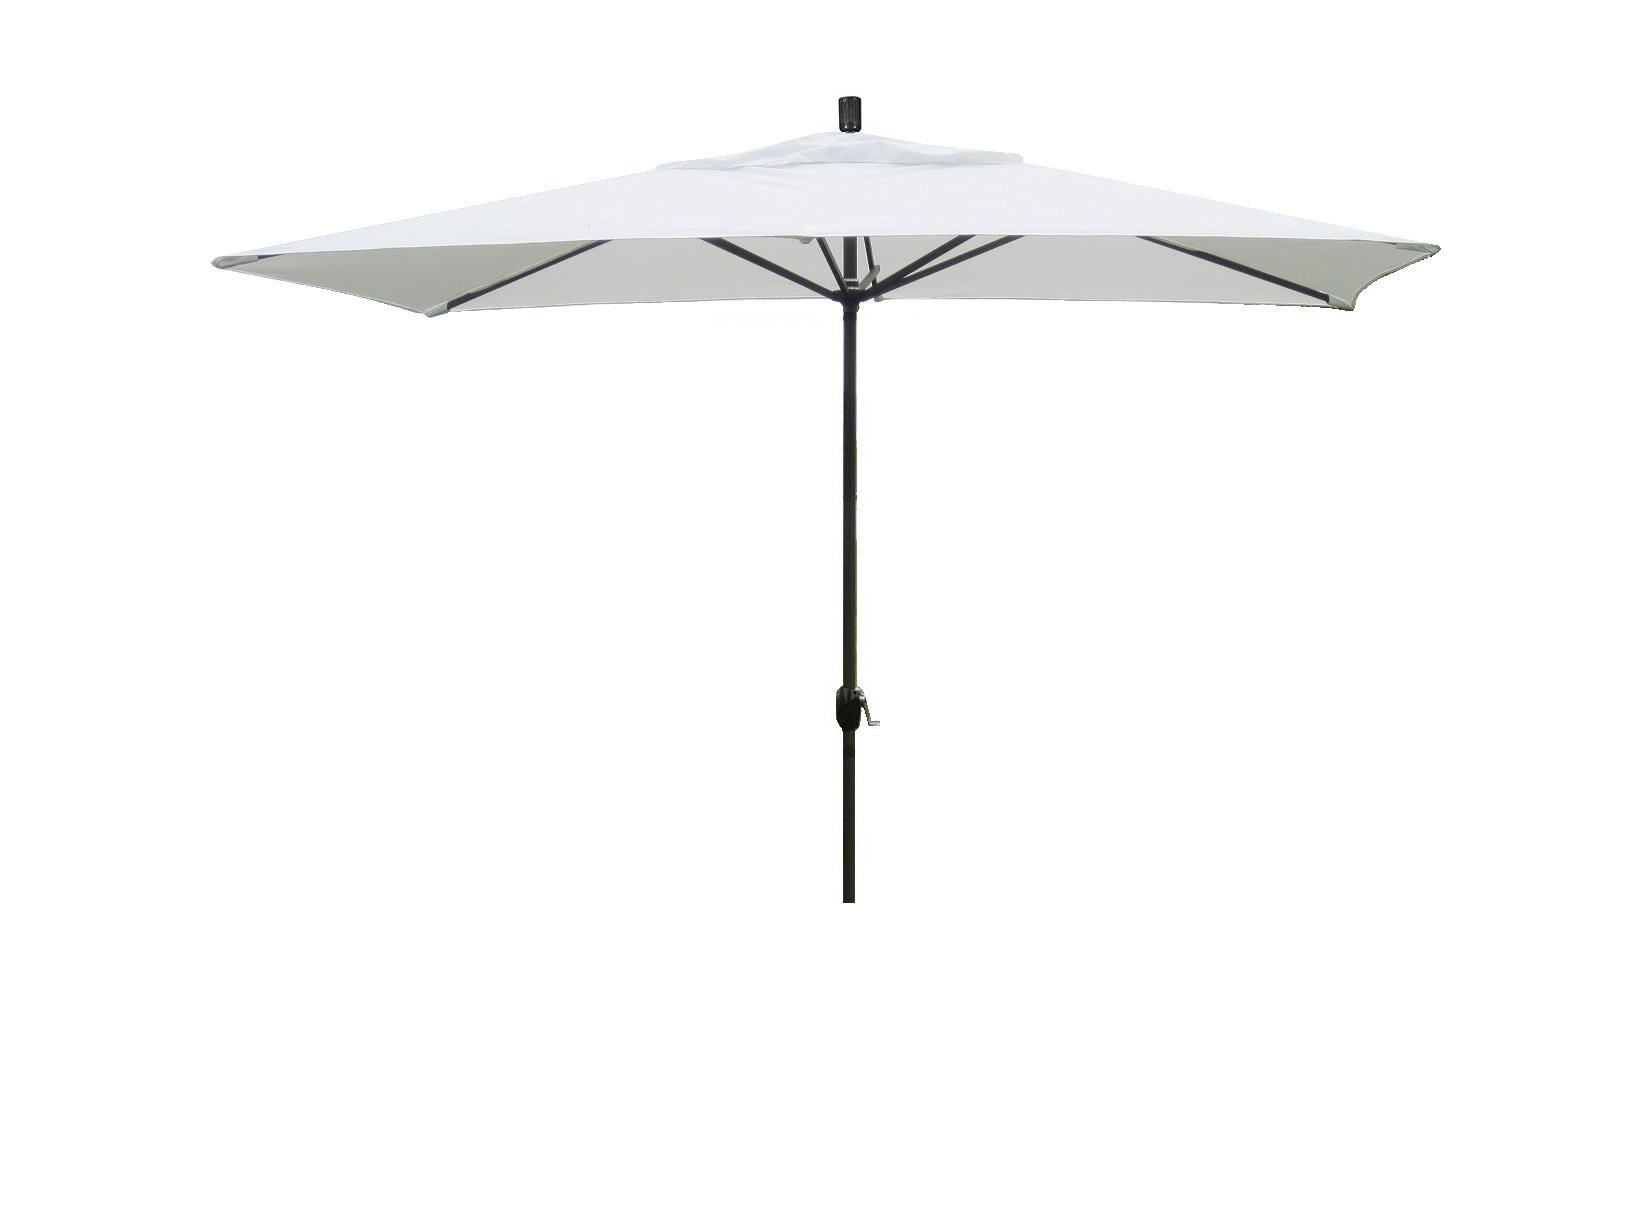 Alexander Elastic Rectangular Market Sunbrella Umbrellas Intended For 2019 Northfleet 10' X 6' Rectangular Market Umbrella (View 12 of 20)